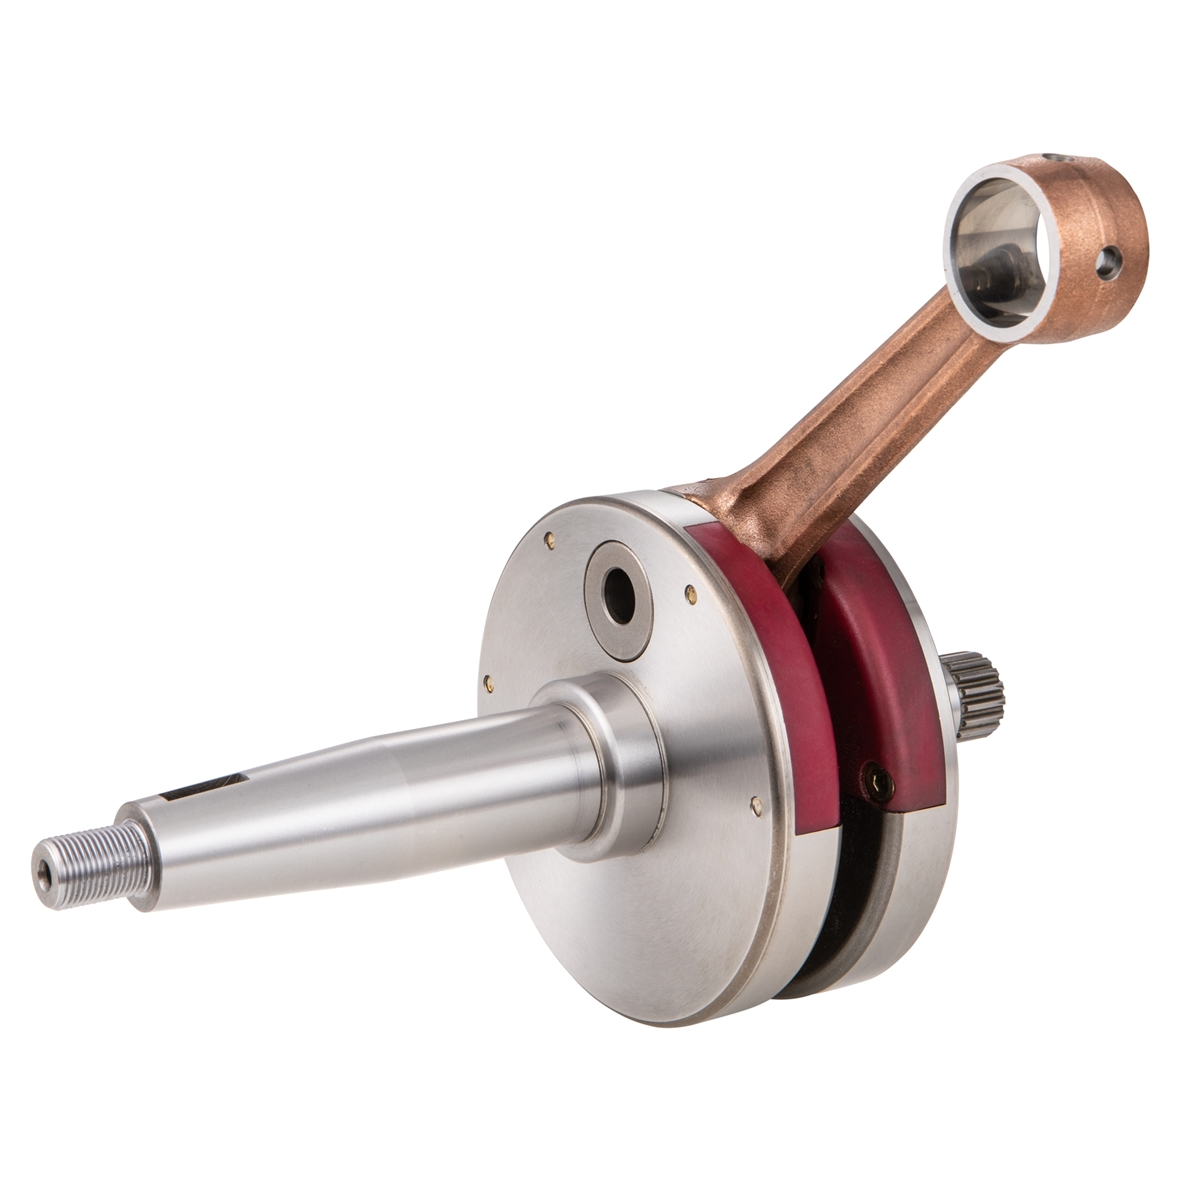 Product Image for 'Crankshaft for GT 240cc cylinder Gran TurismoTitle'